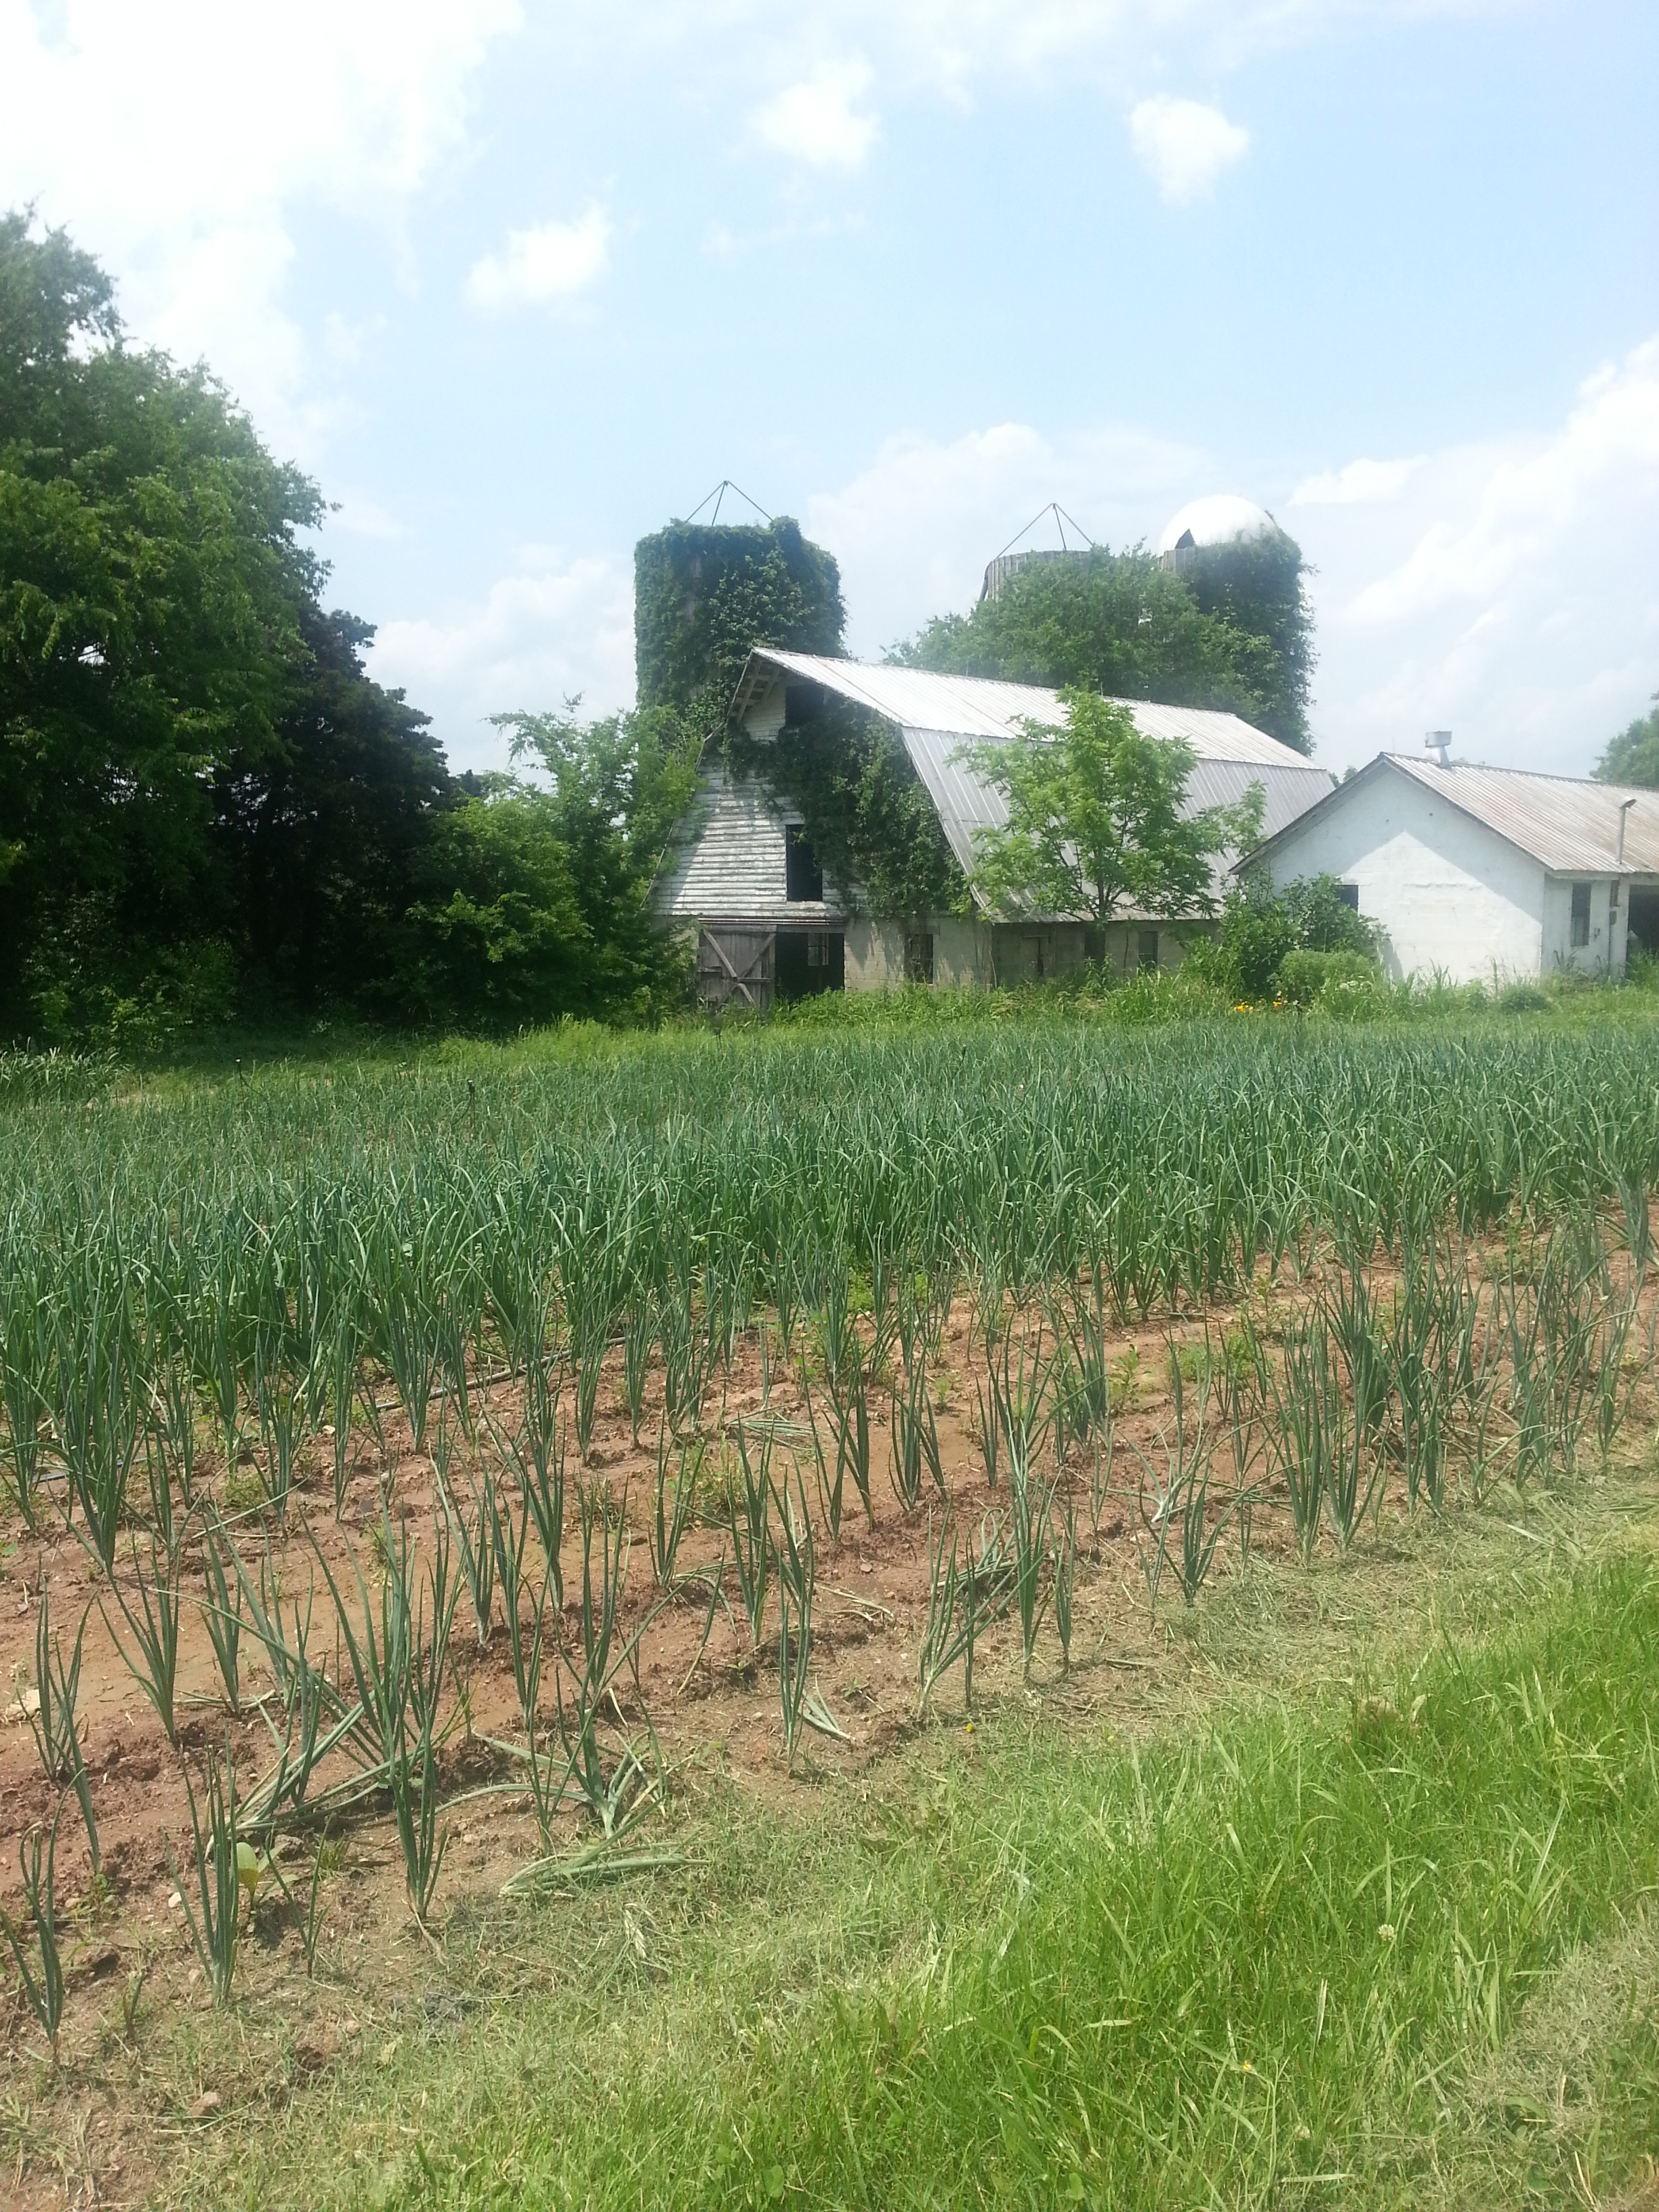 Silos and rows of onions